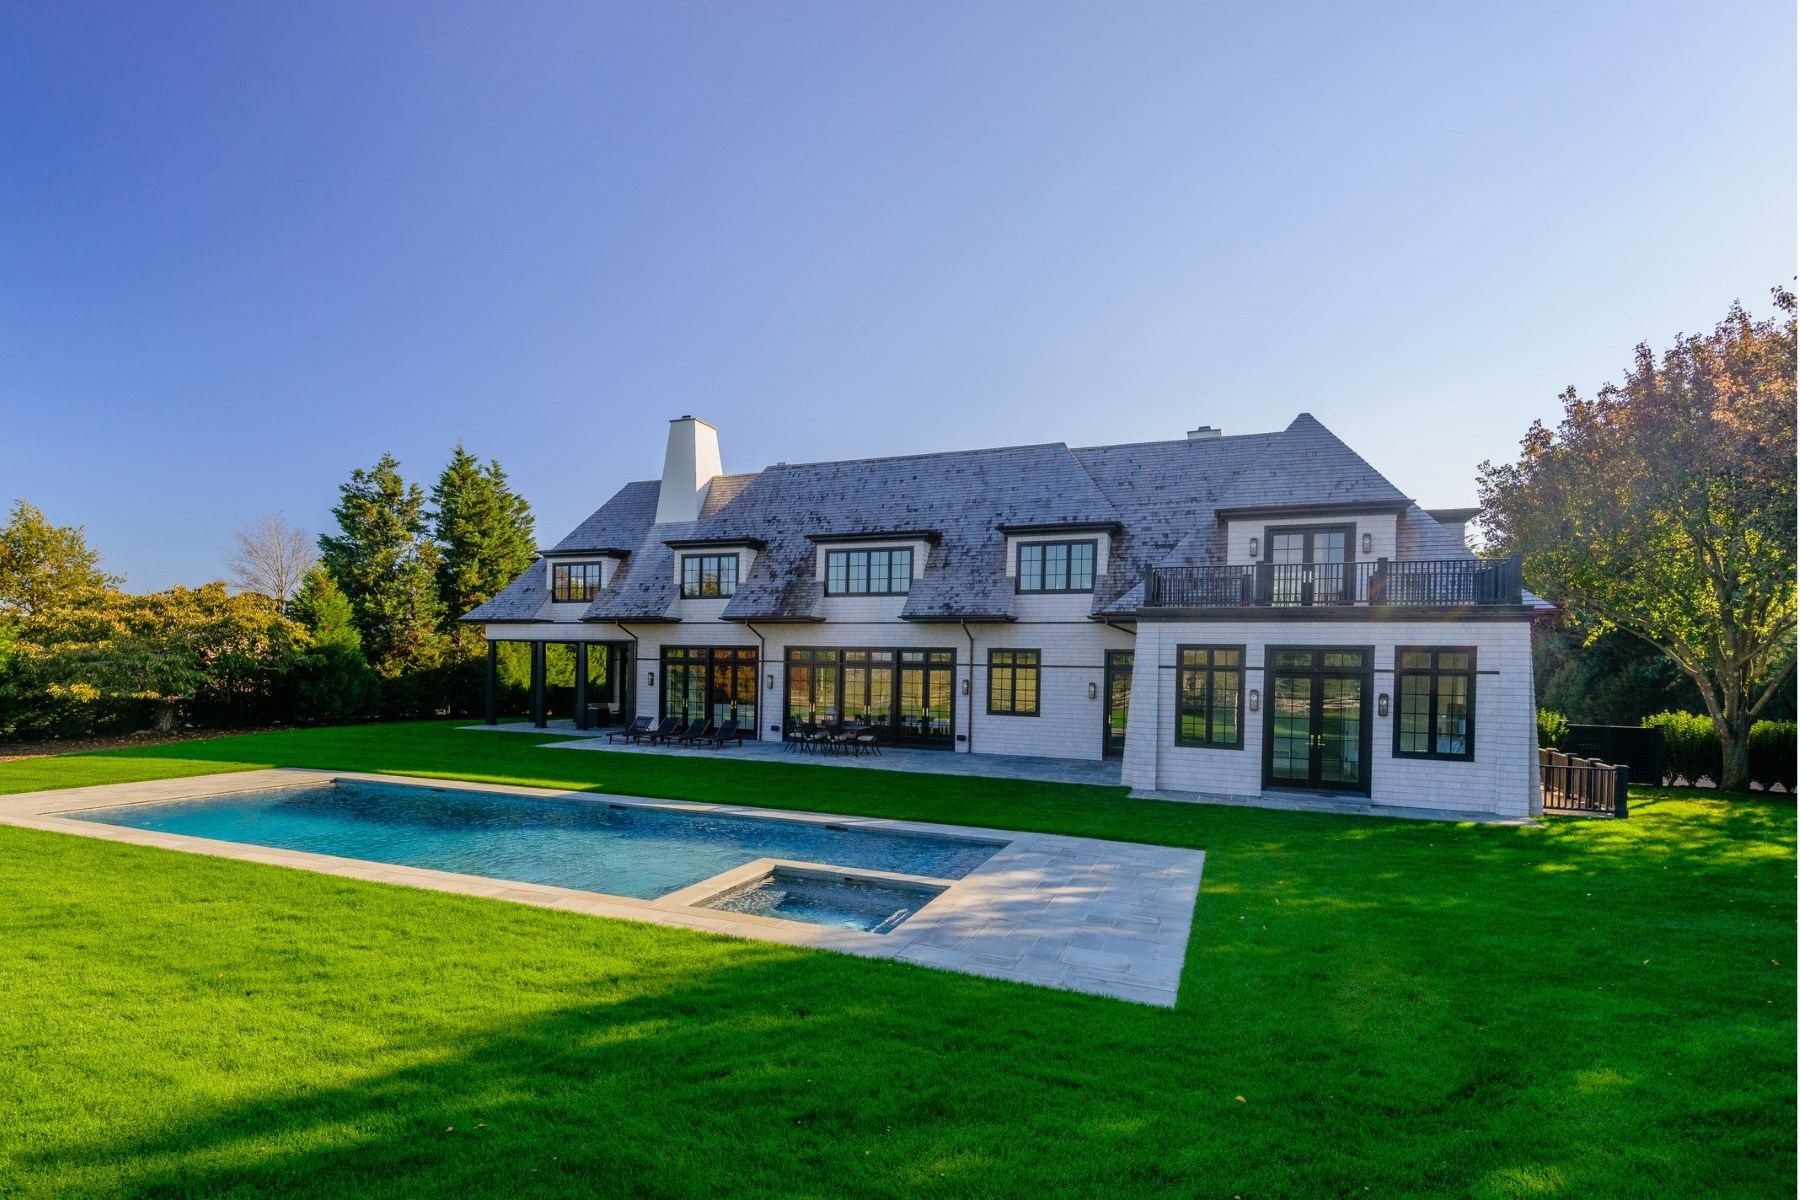 Property For Sale at Exceptional New Estate, Horse Farm Views